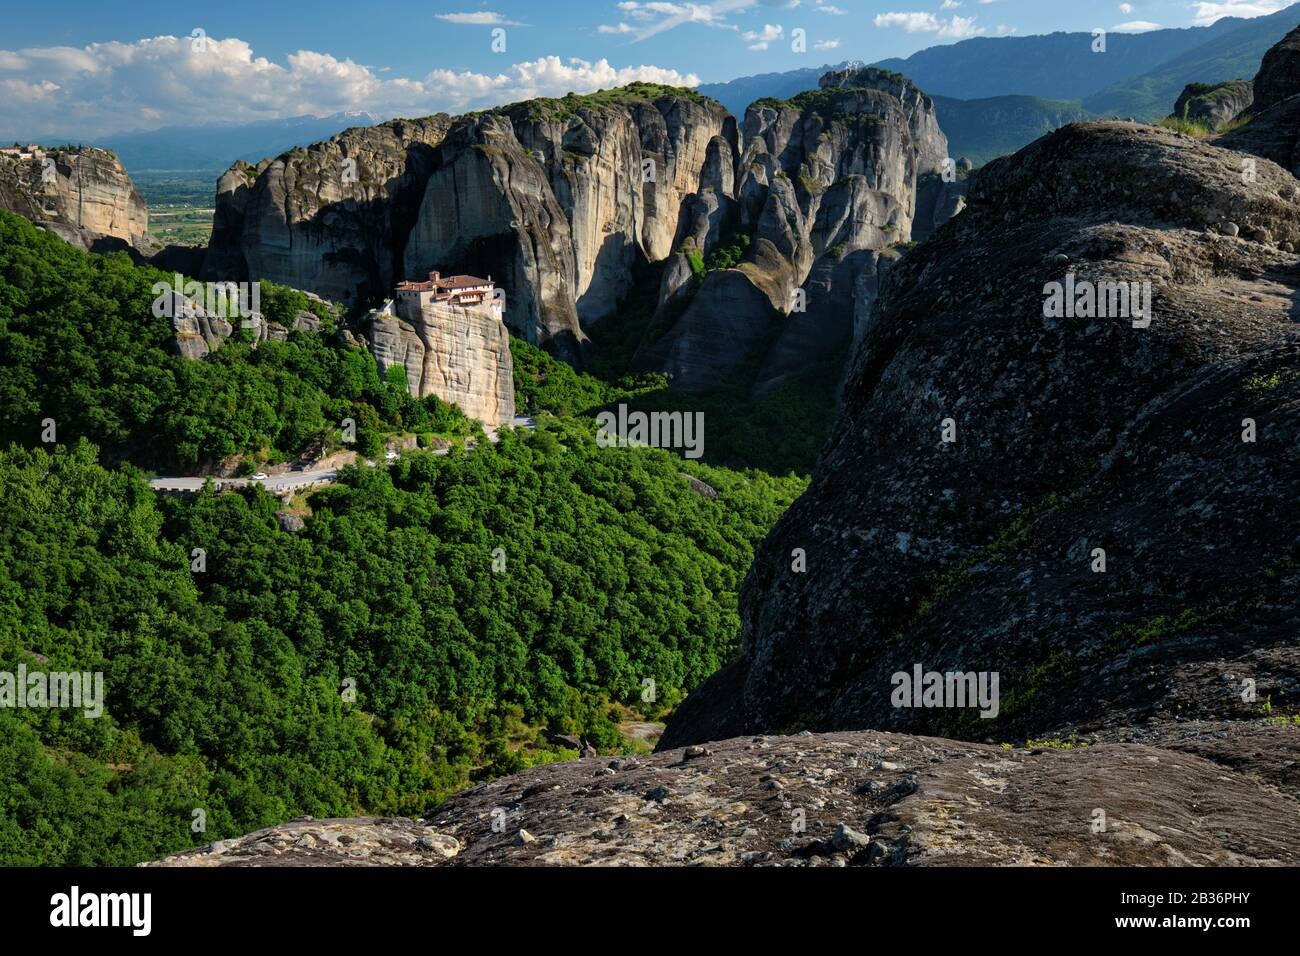 Monastery of Rousanou and Monastery of St. Stephen in Meteora in Greece Stock Photo